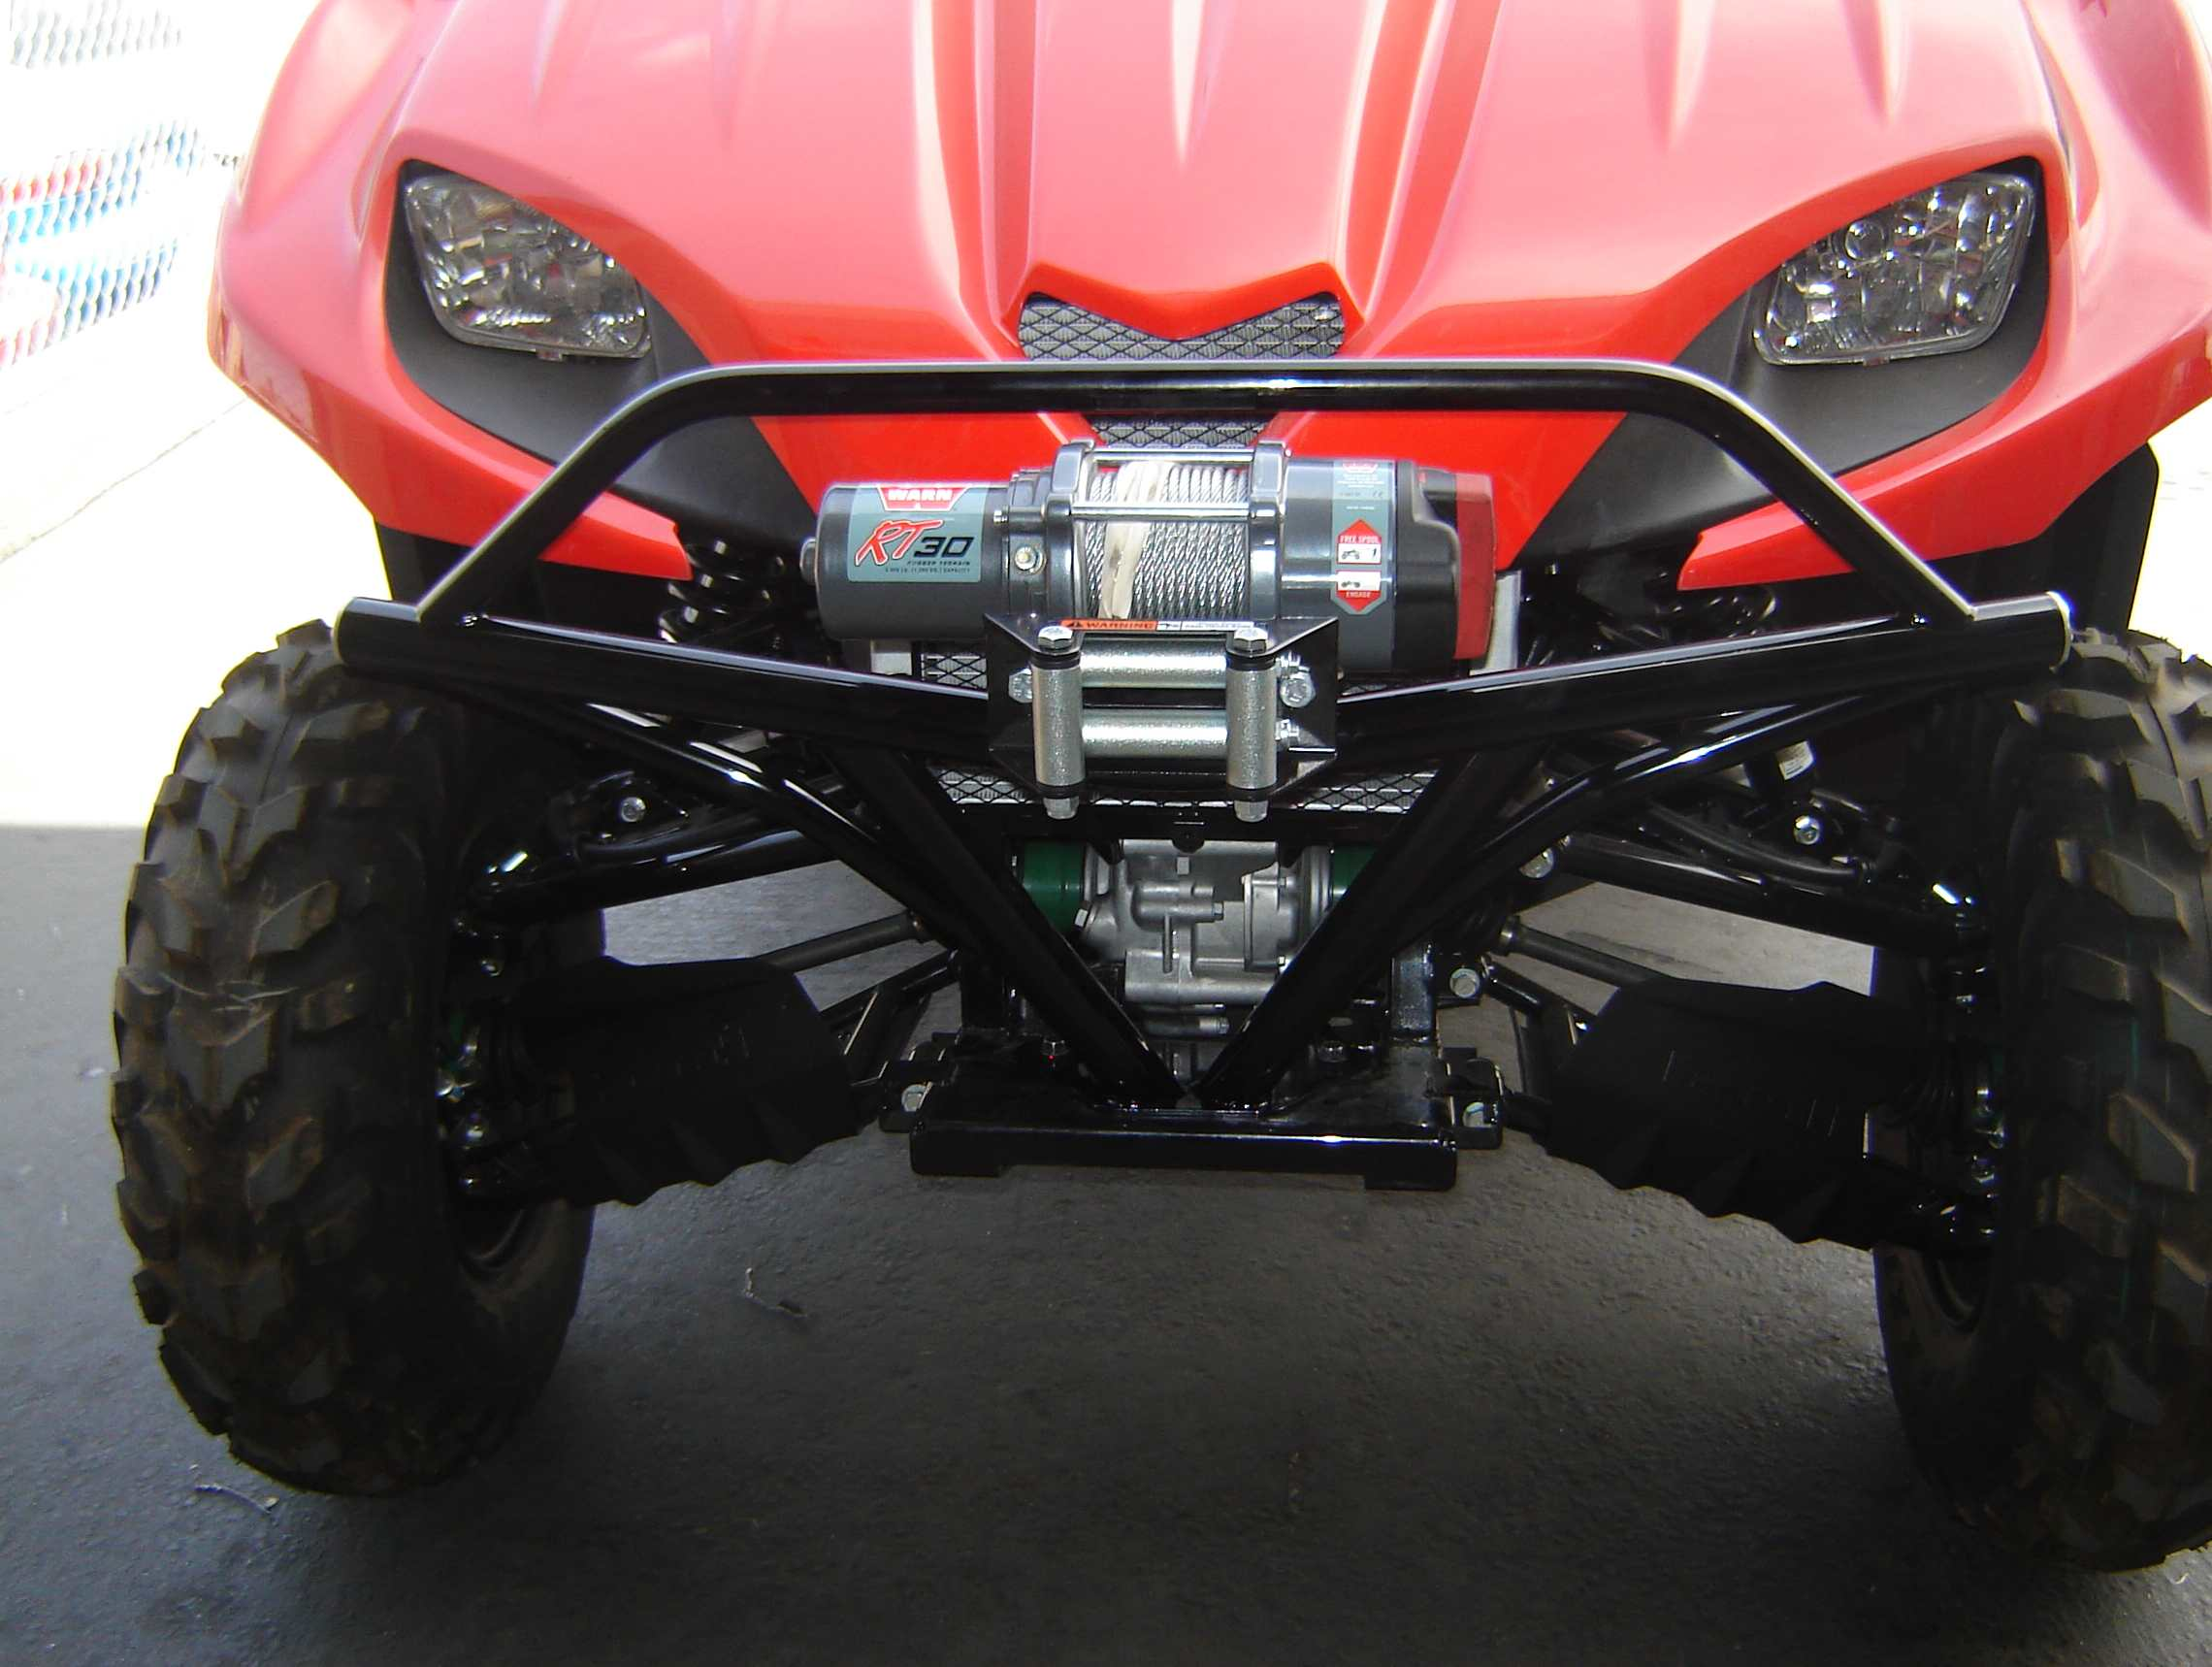 Kawasaki Teryx Winch Wiring Diagram Libraries Utv Schema Diagramskawasaki Blog Suzuki King Quad